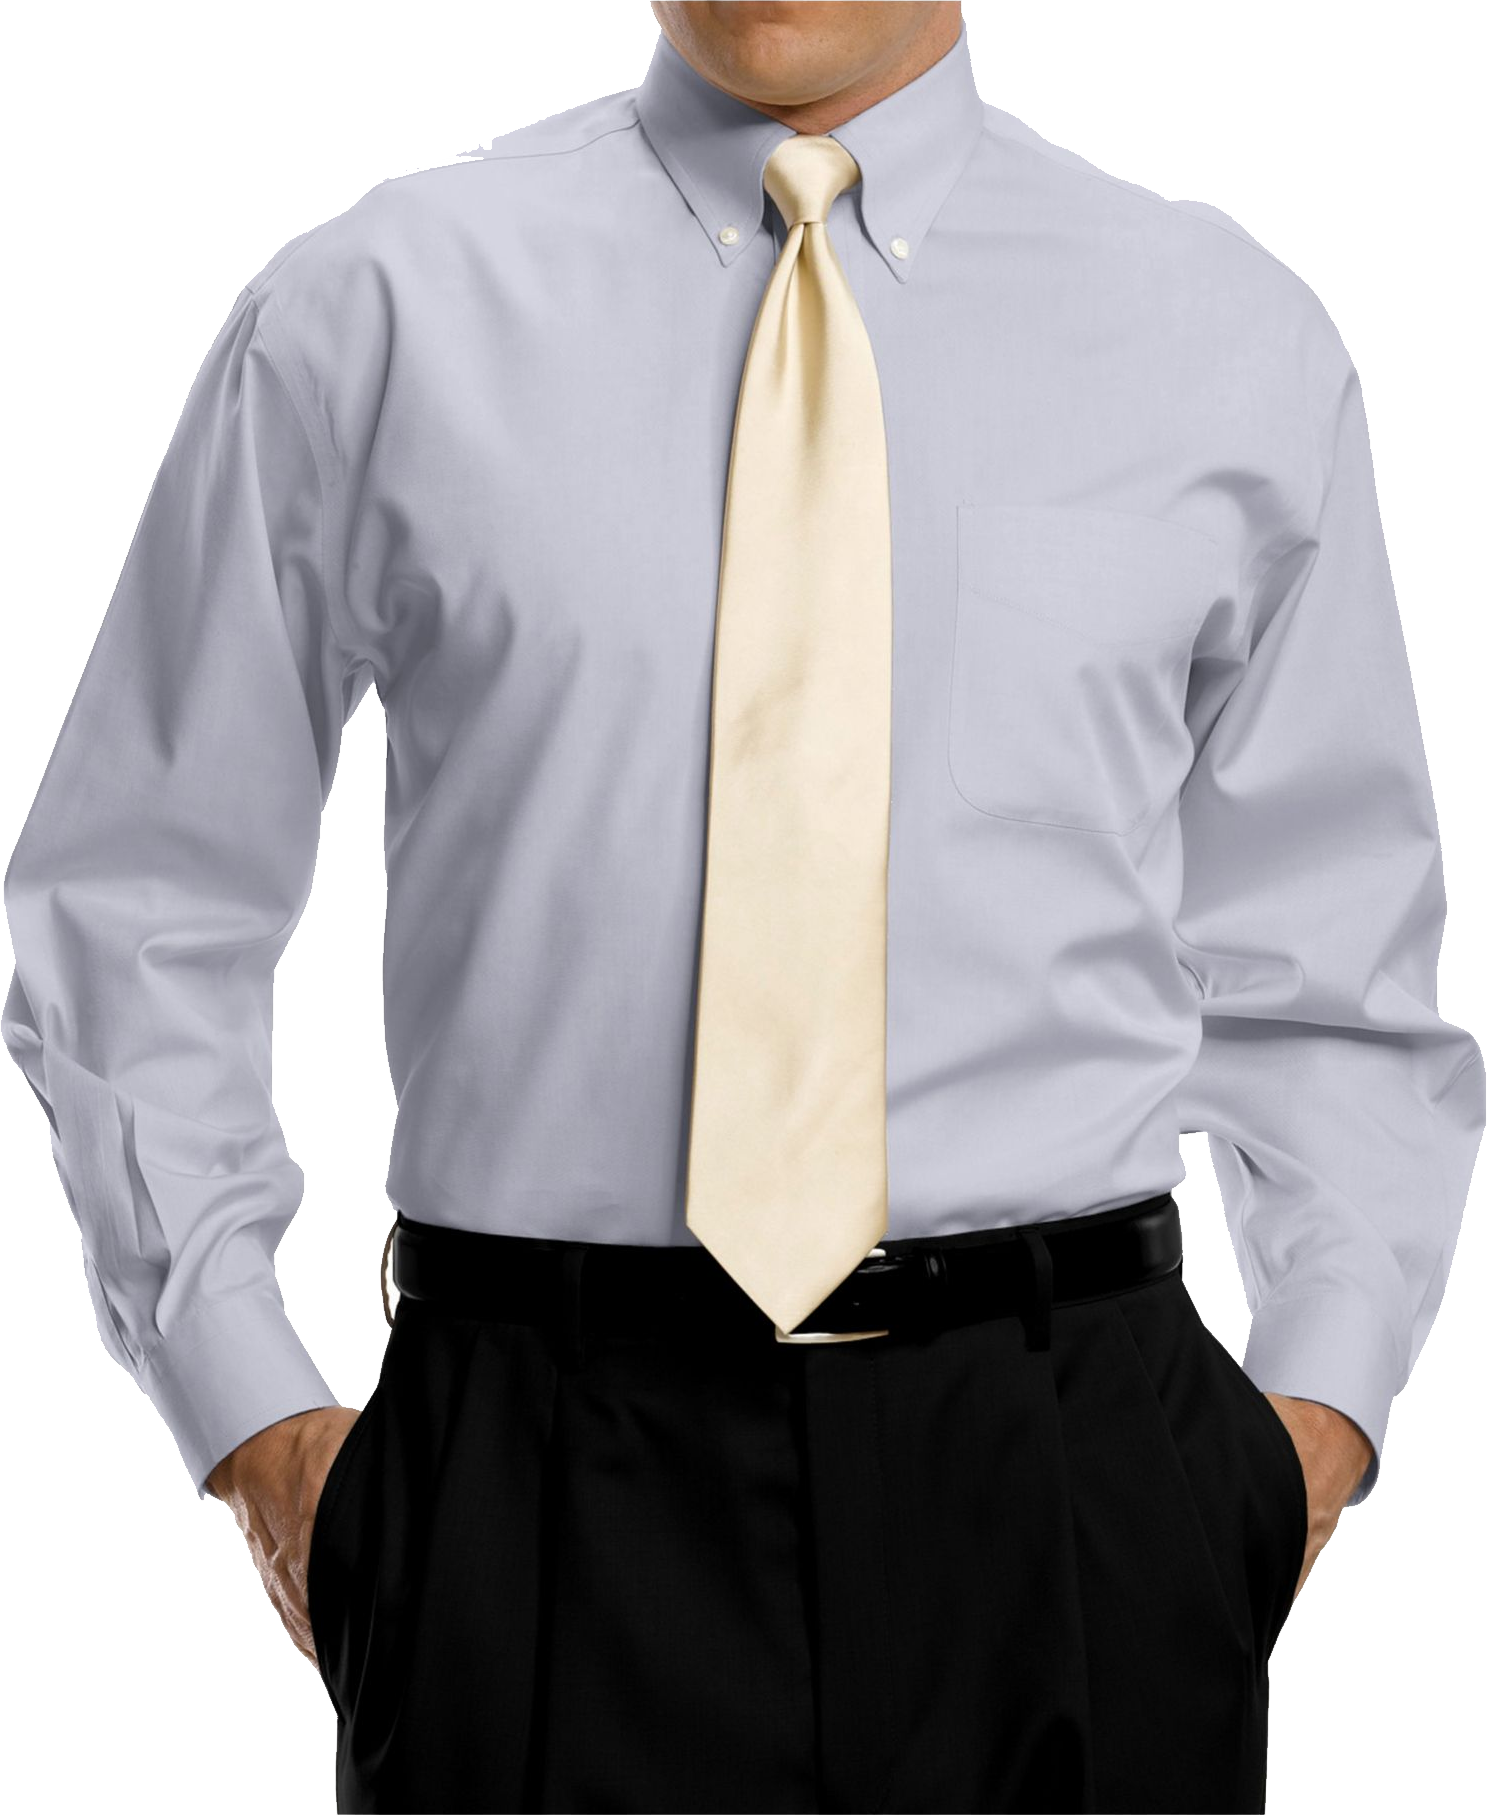 Bright Grey Full Sleeve Shirt With Golden Tie PNG Image